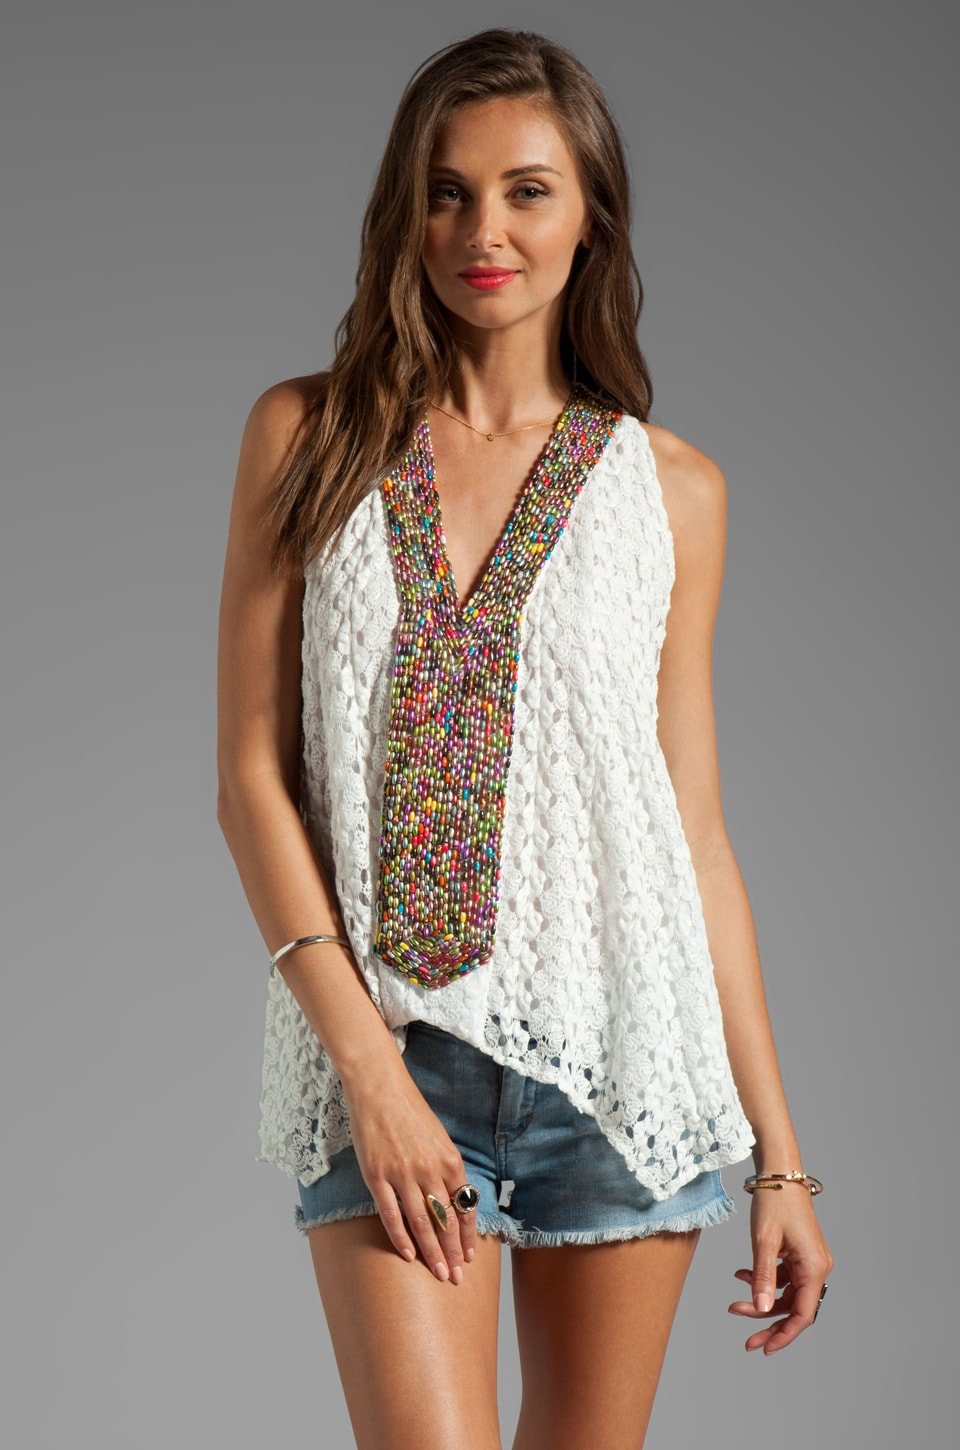 T-Bags LosAngeles Embroidered Crochet Tank in Ivory